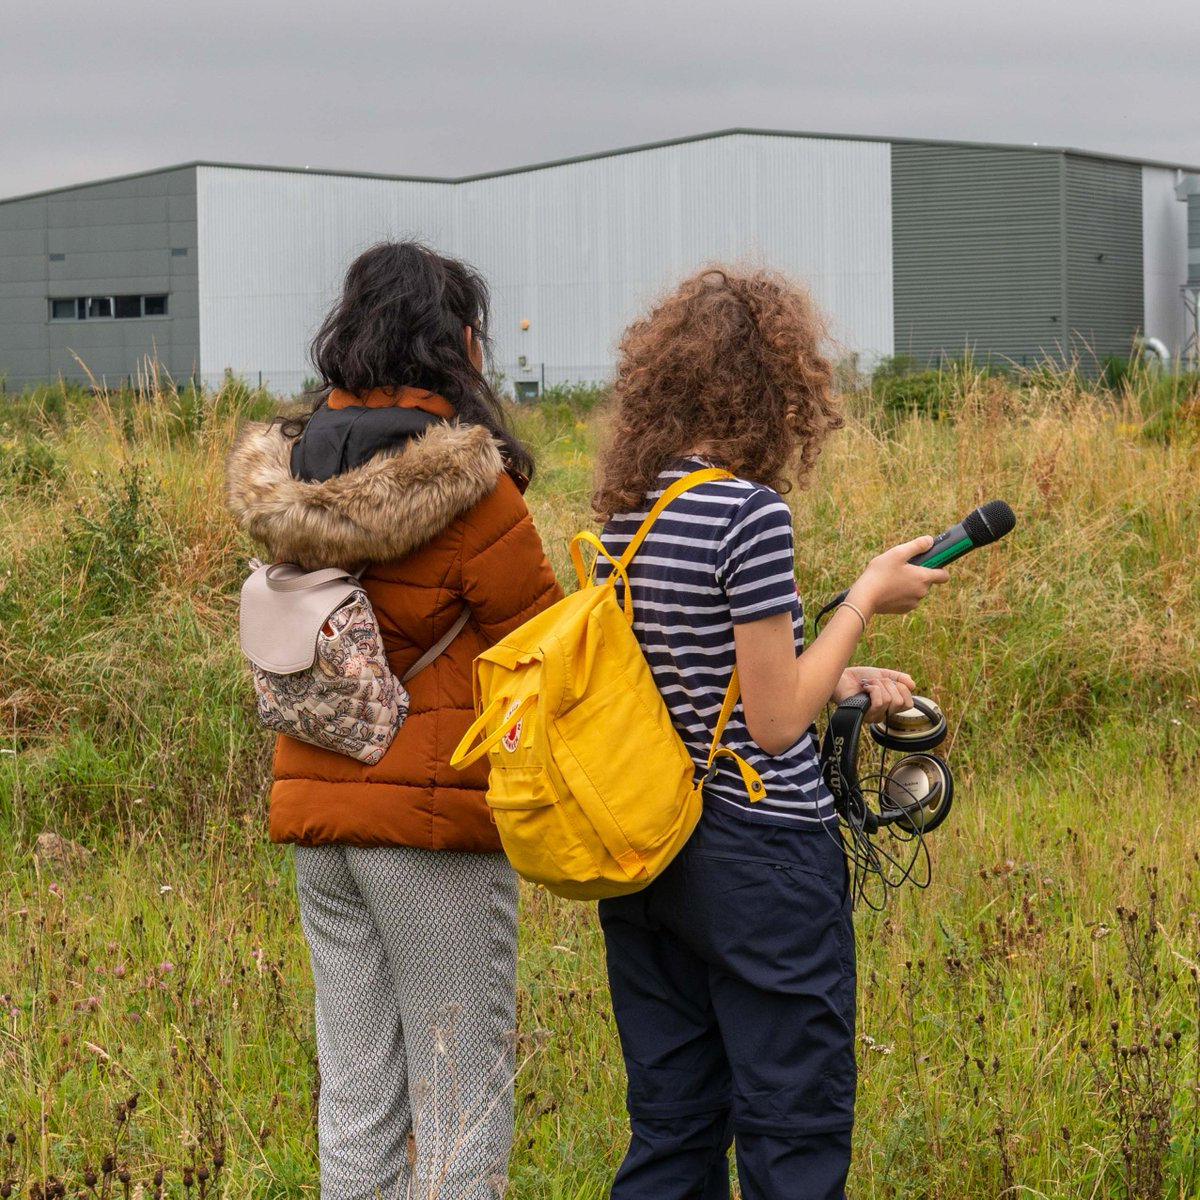 What happens when East Leeds own amazonian wild wetlands edge, comes up against the global corporate might of the Amazon's giant shipping warehouse? Tune in to this week's RED KITE podcast Friday at 4pm to find out! #HealthyHolidays2020 @LeedsCommFound https://t.co/eYkMKfi5zh